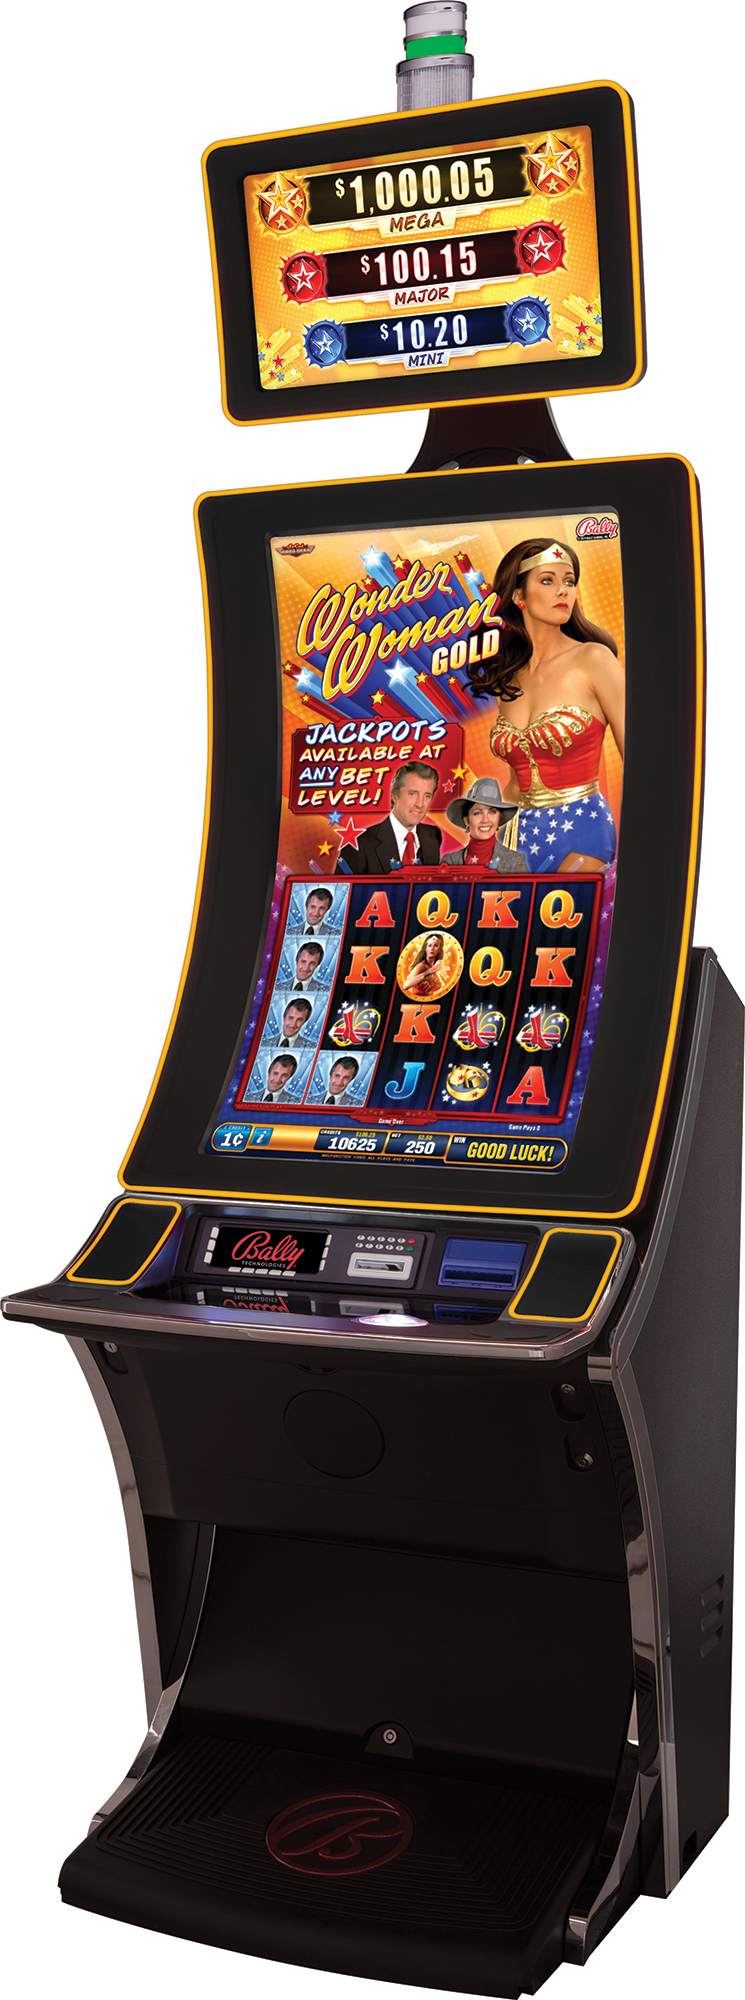 http://www.multivu.com/players/English/7322651-wonder-woman-lynda-carter-bally-technologies-exhibit-at-global-gaming-expo-sands-las-vegas/gallery/image/99ad80a5-f88a-4979-aa56-e13ff9c12d8e.HR.jpg